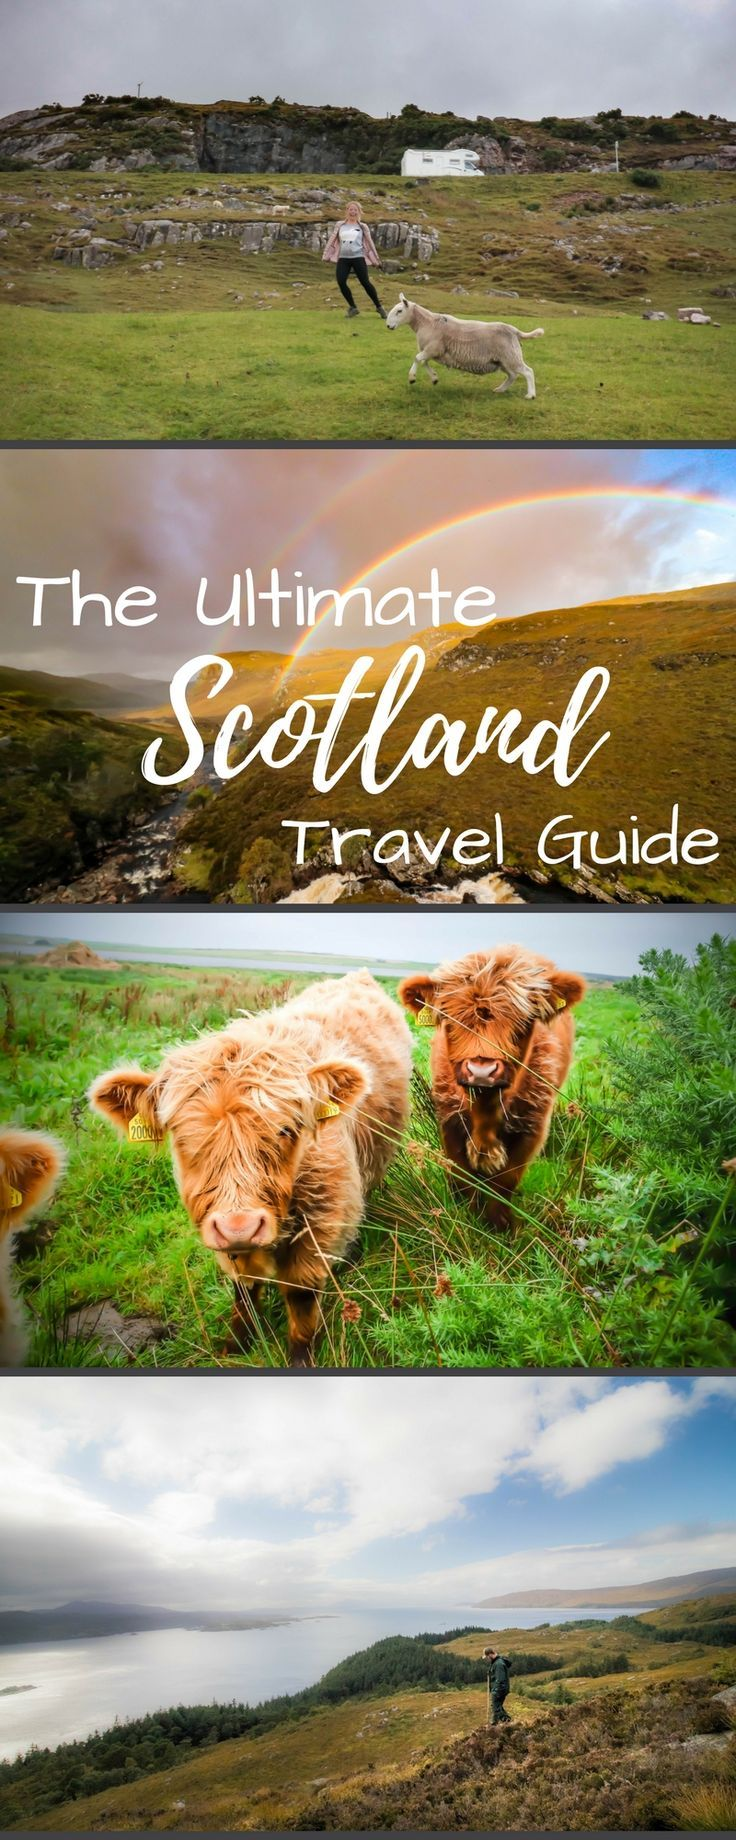 The ultimate travel guide to Scotland. Including the North Coast 500, Edinburgh, Glasgow, Falkirk, the Isle of Skye, and the Northern Highlands. Things to do, castles to see, and food to eat is all here!